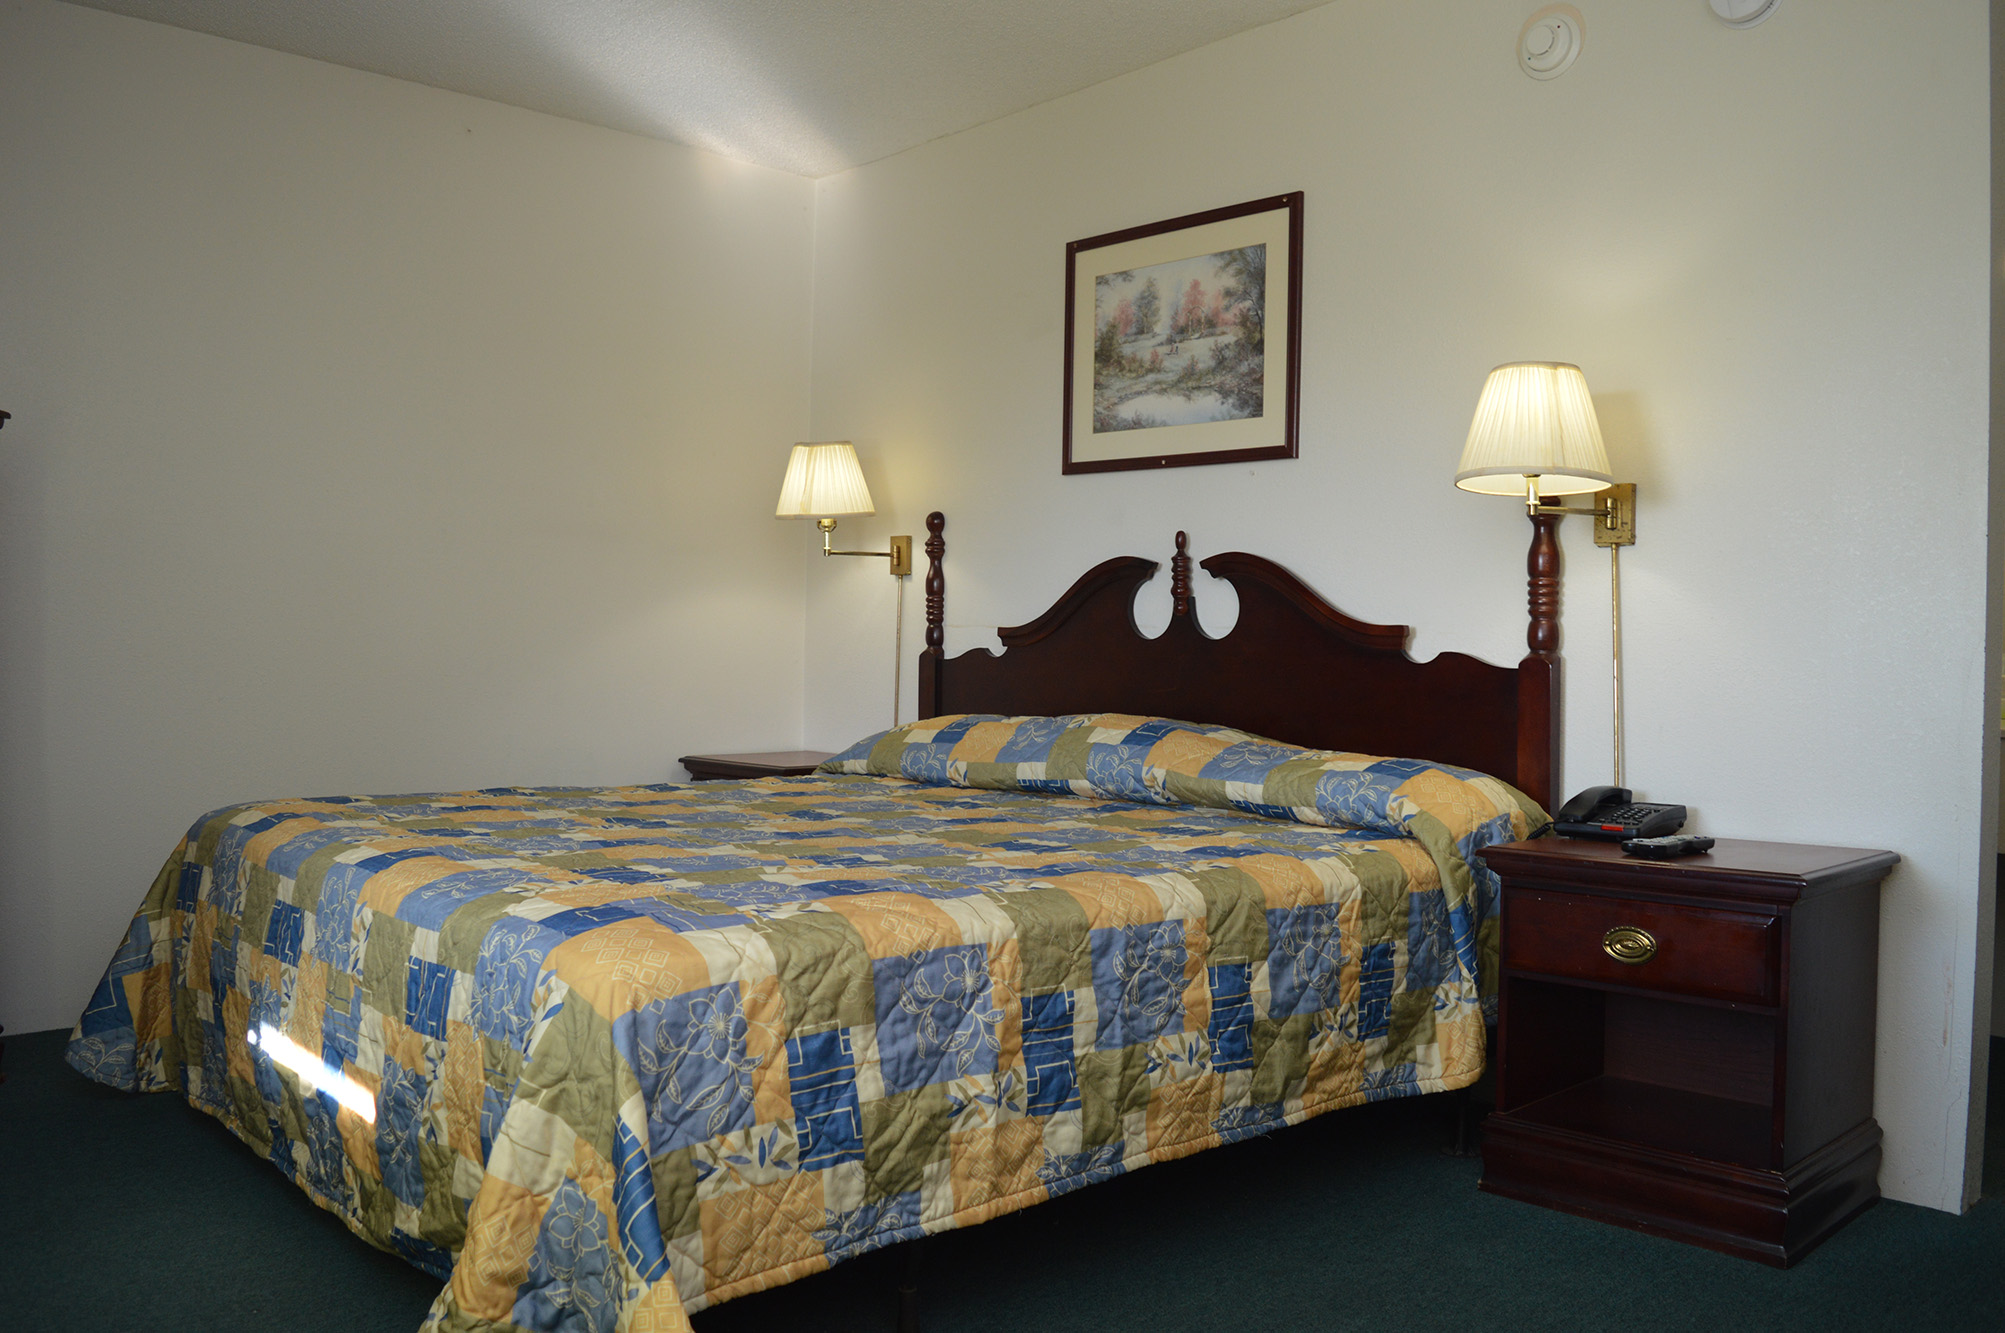 Rooms starting at $45 Per Night